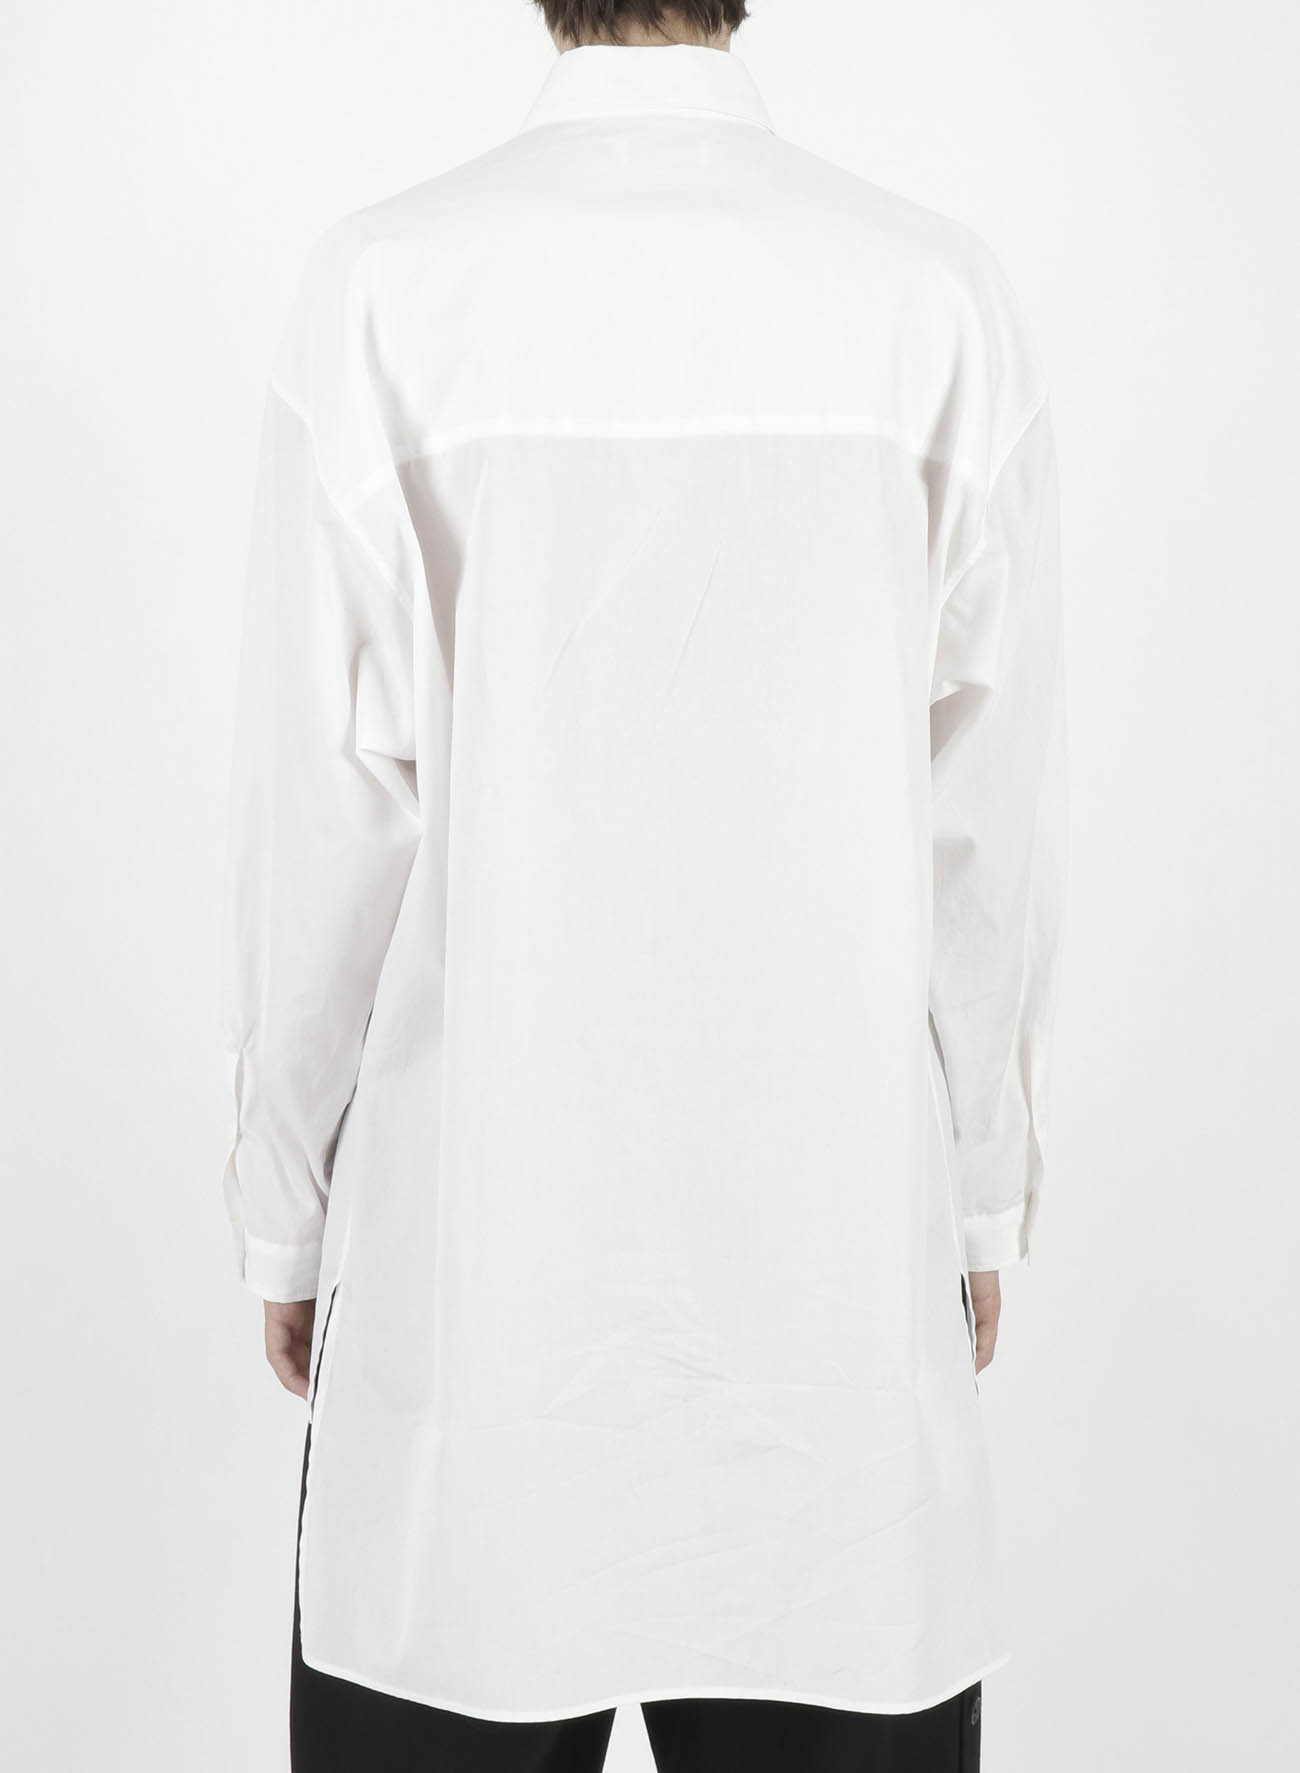 CHAIN STITCH BROAD FRONT BACK UNEVEN BLOUSE